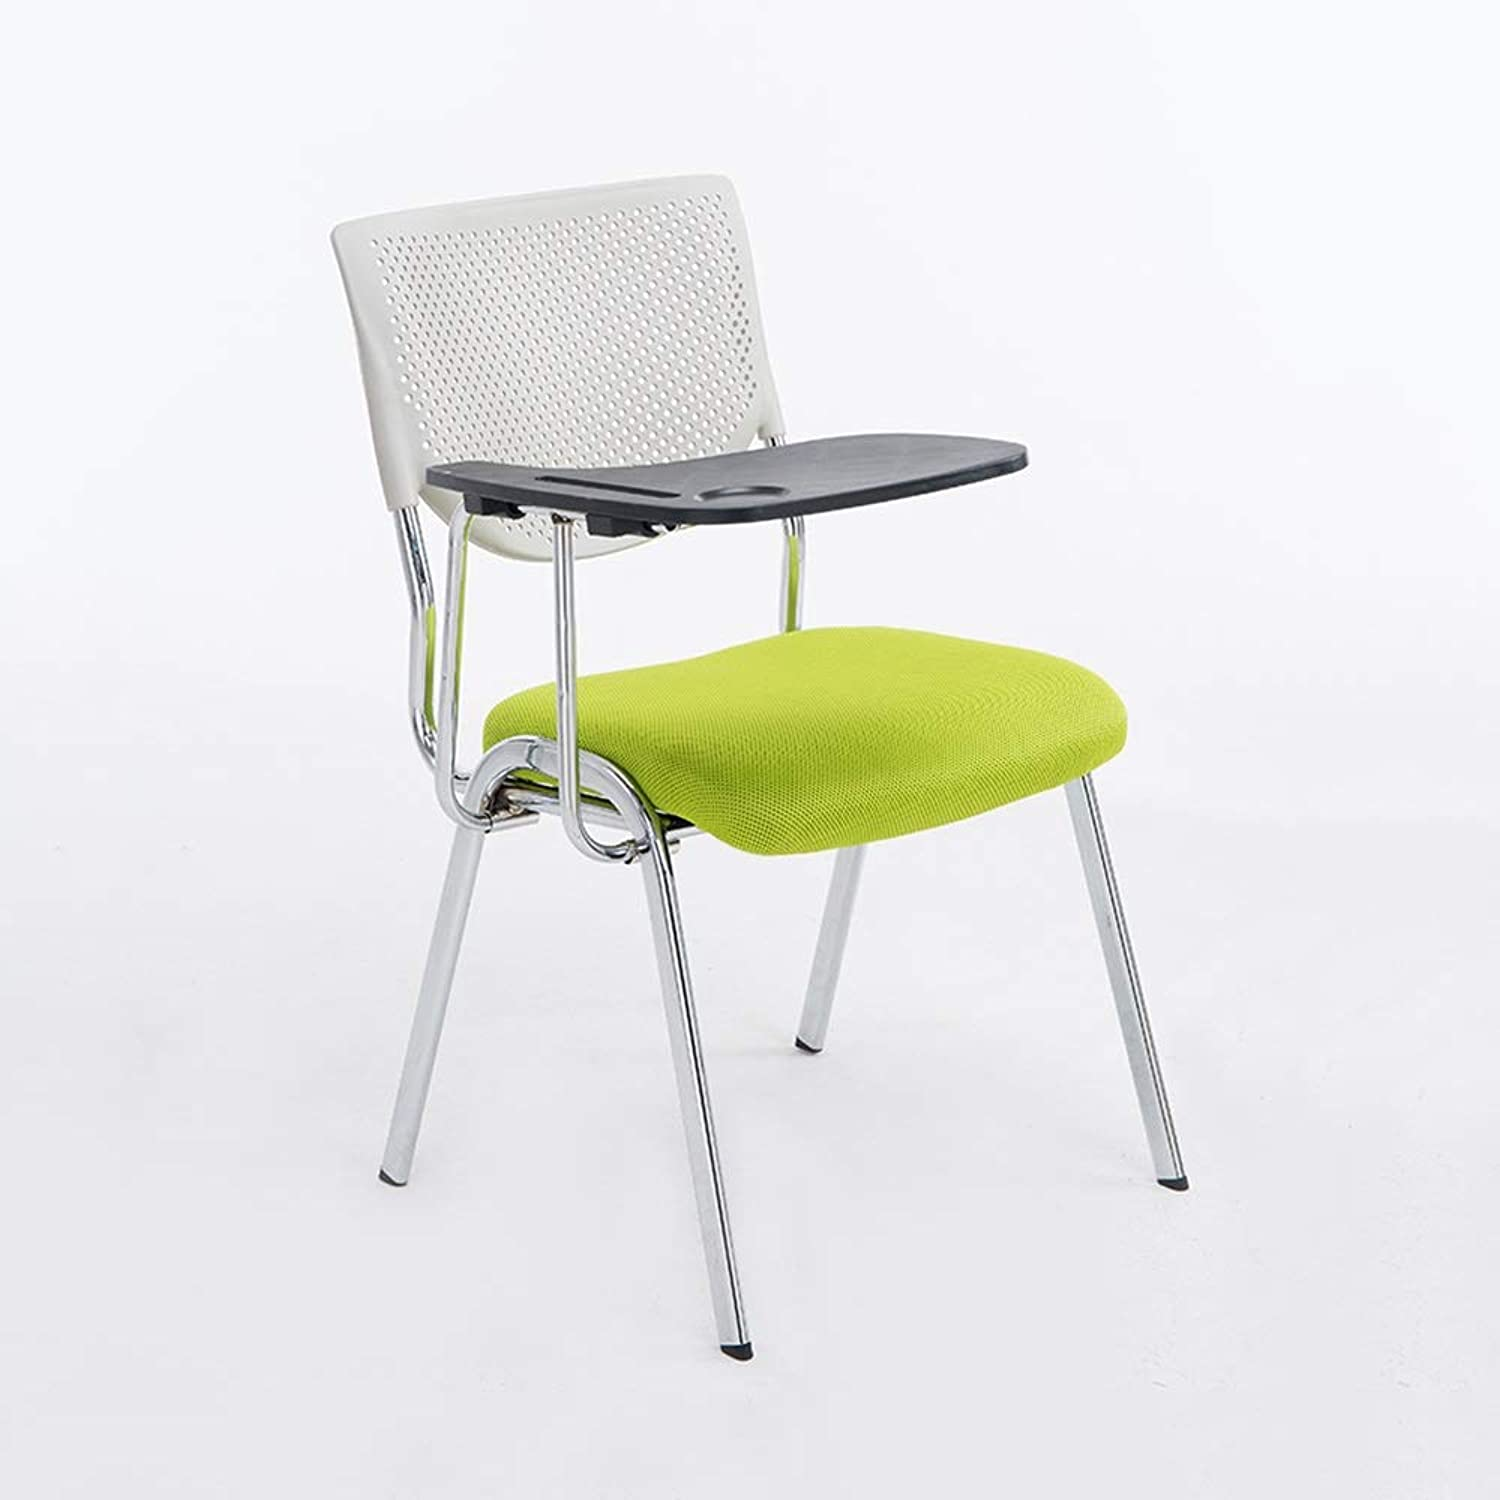 HPLL Folding Chair, Metal Folding Chair, Thick Sponge Seat and Backrest Computer Office 5 colors Optional Kitchen Folding Chair (color   B, Size   50X51X82cm)